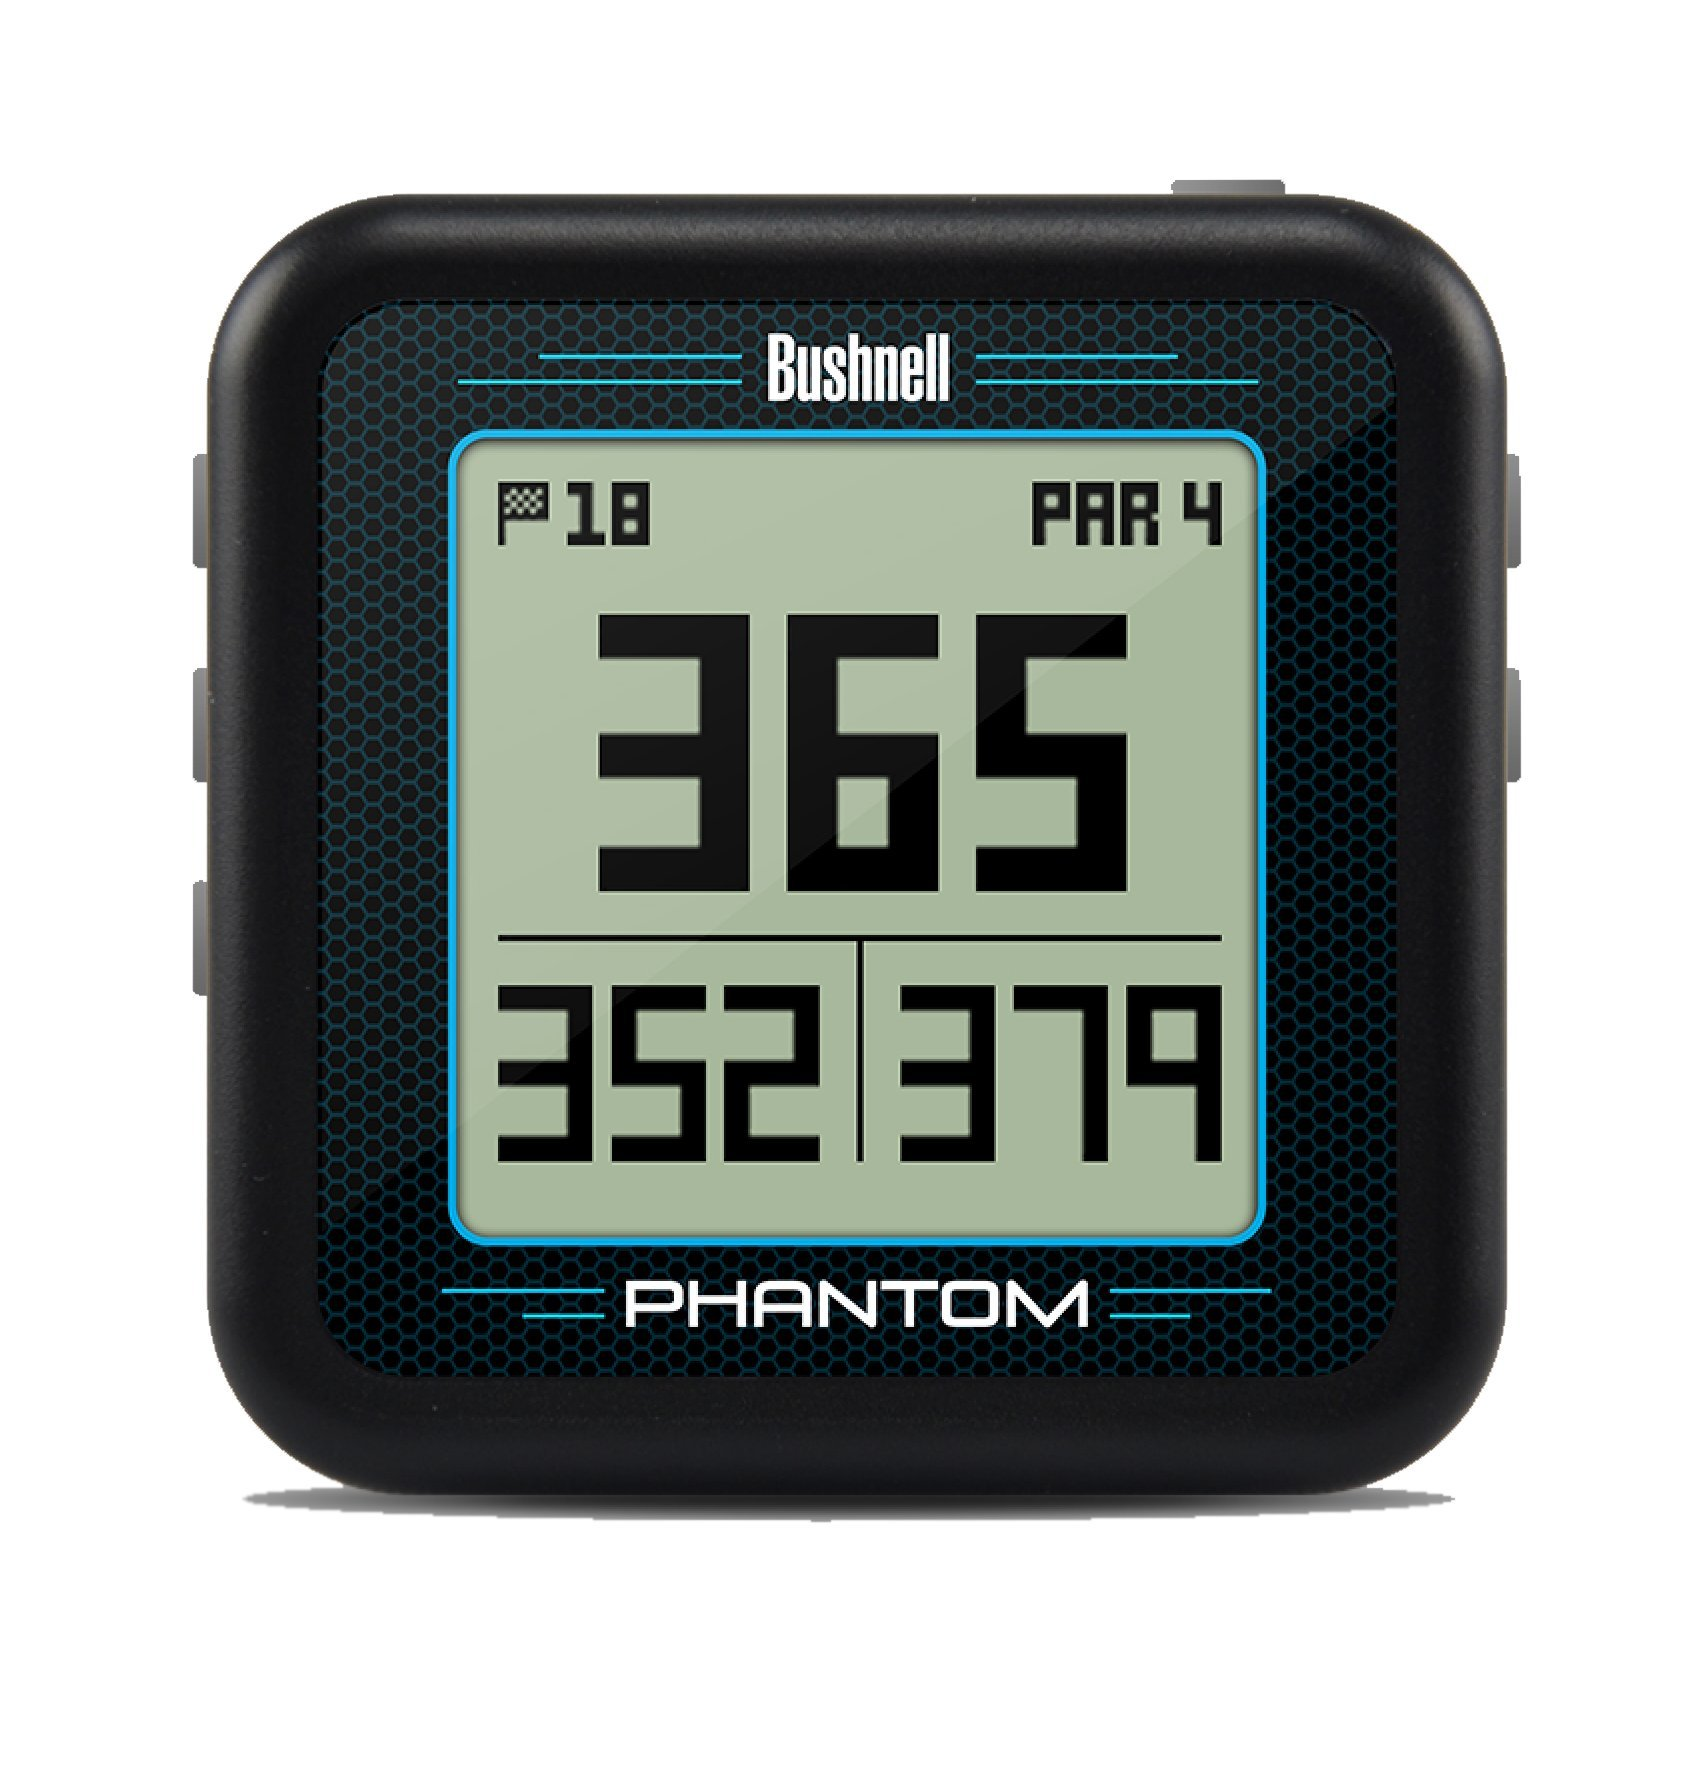 Bushnell 368820 Phantom Golf GPS Rangefinder, Black